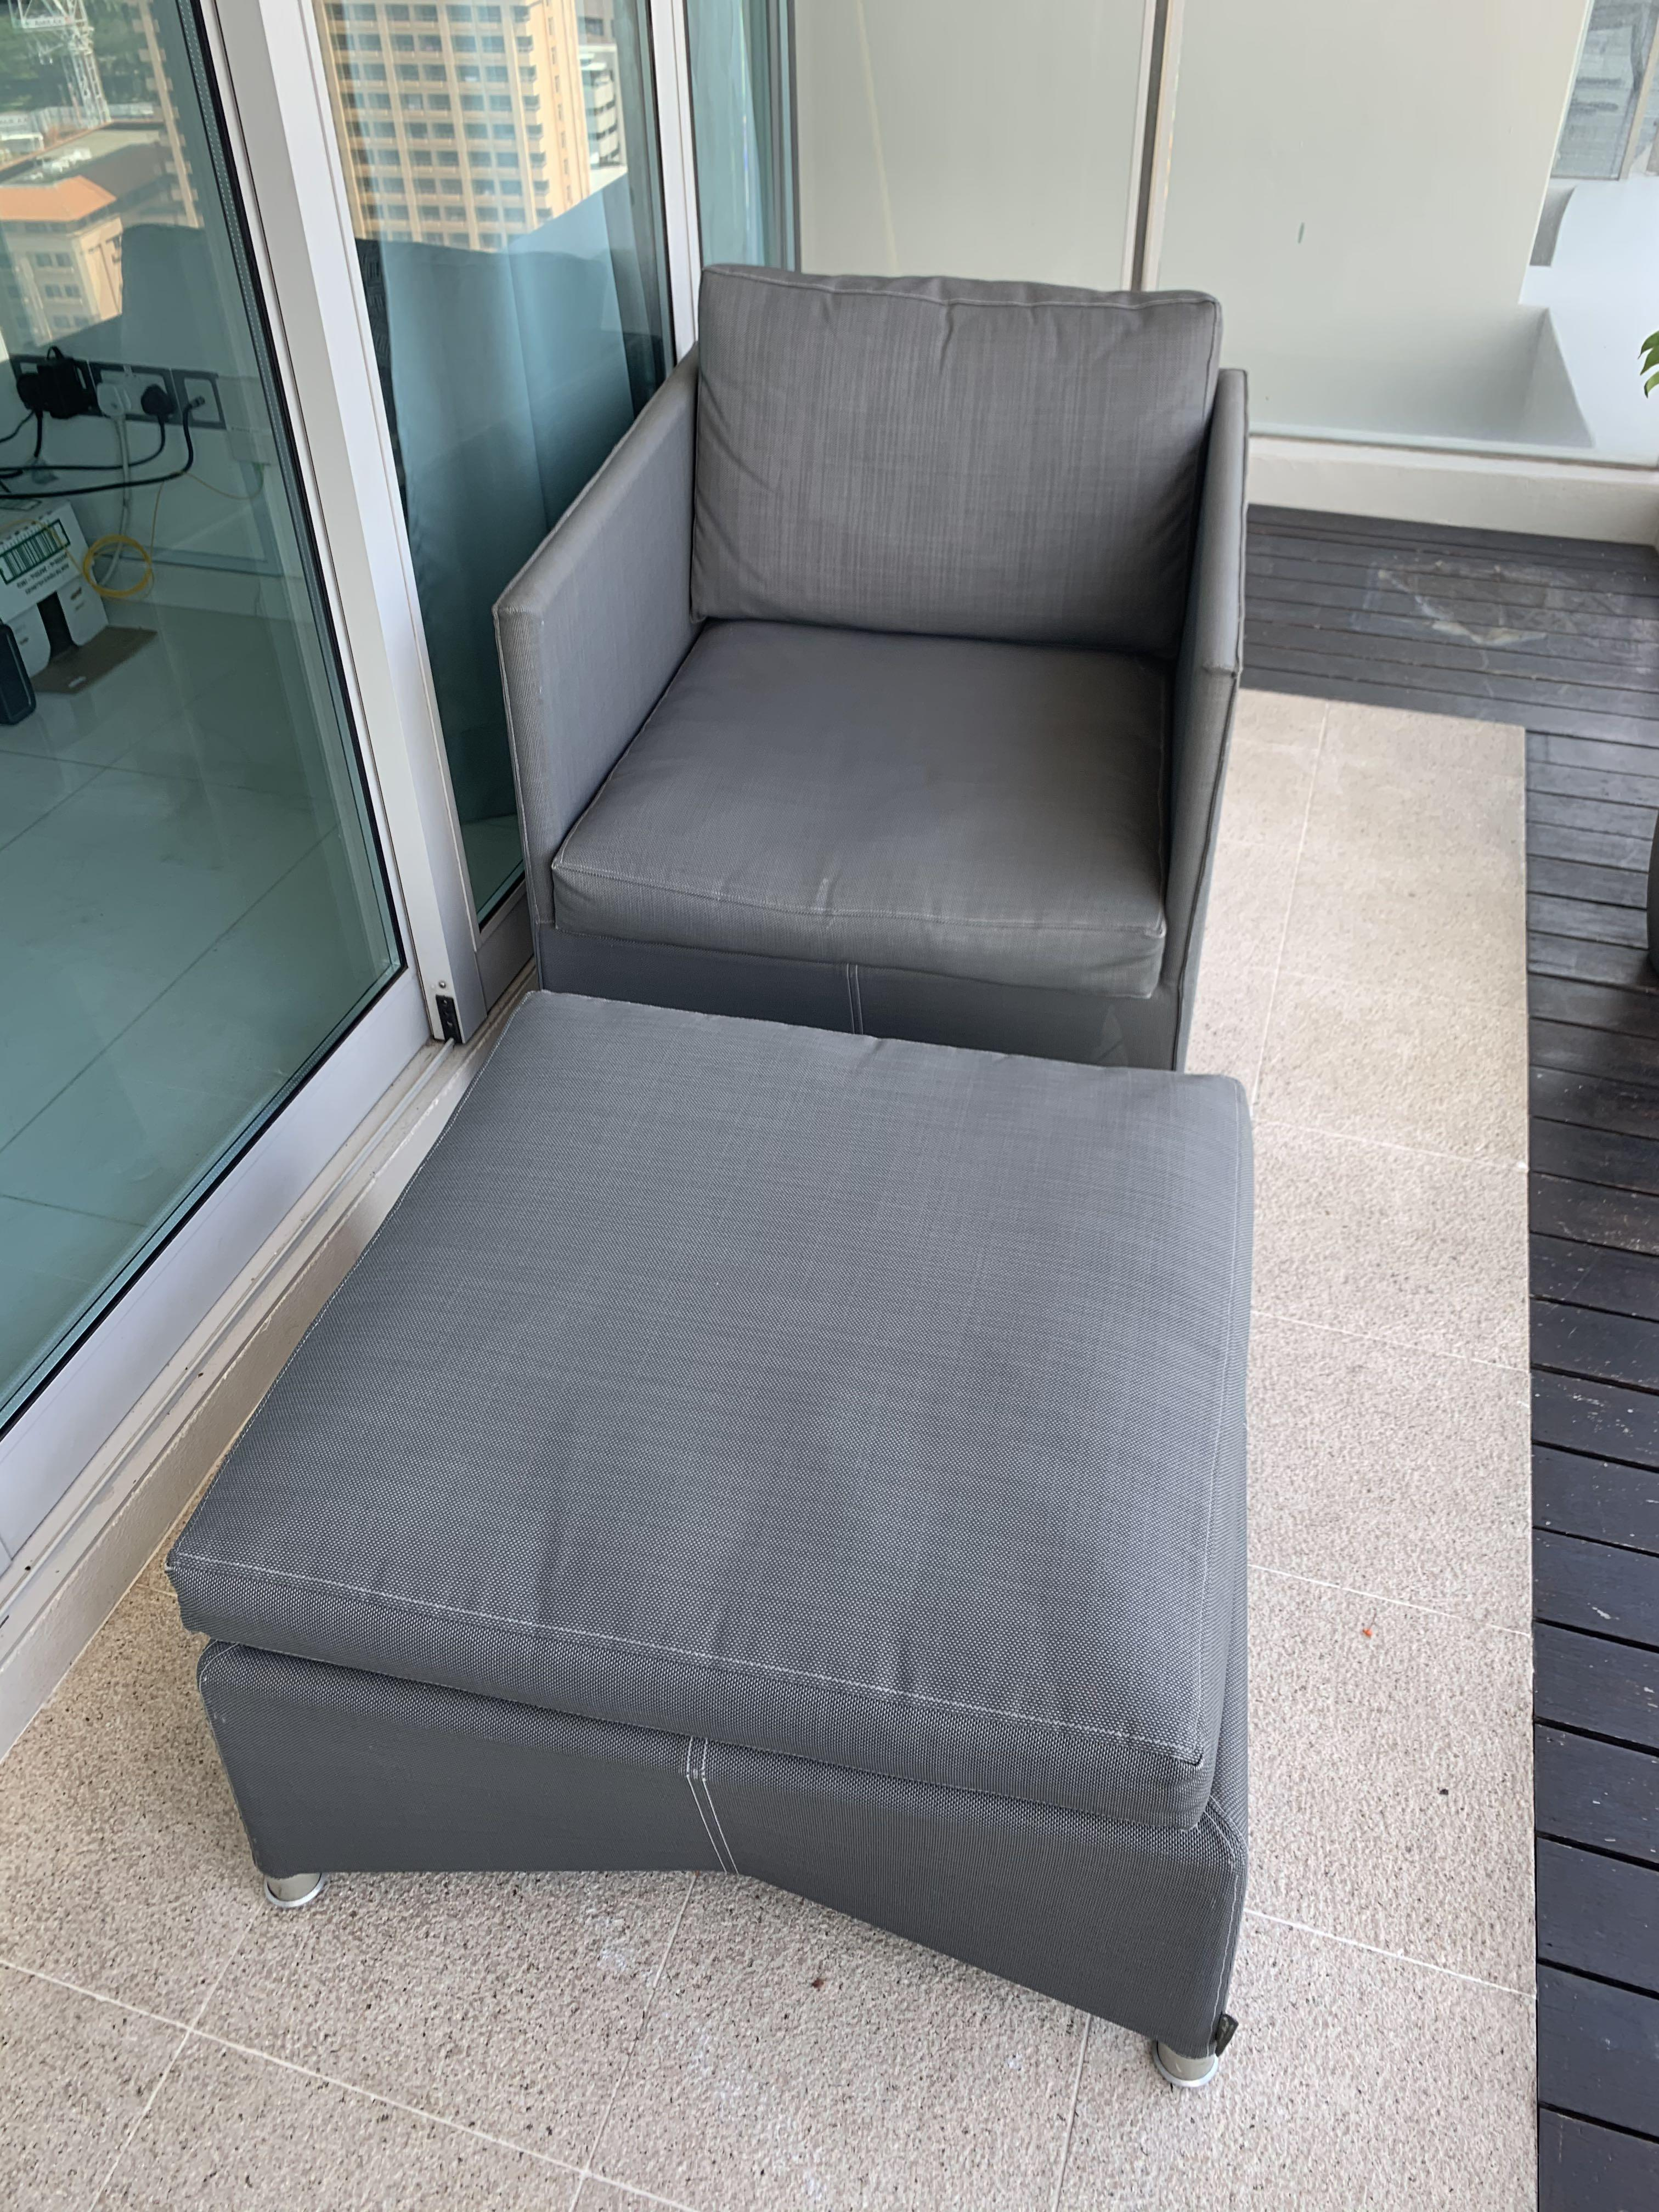 Outdoor Chair With Puff Convertible To Coffee Table Furniture Tables Chairs On Carousell